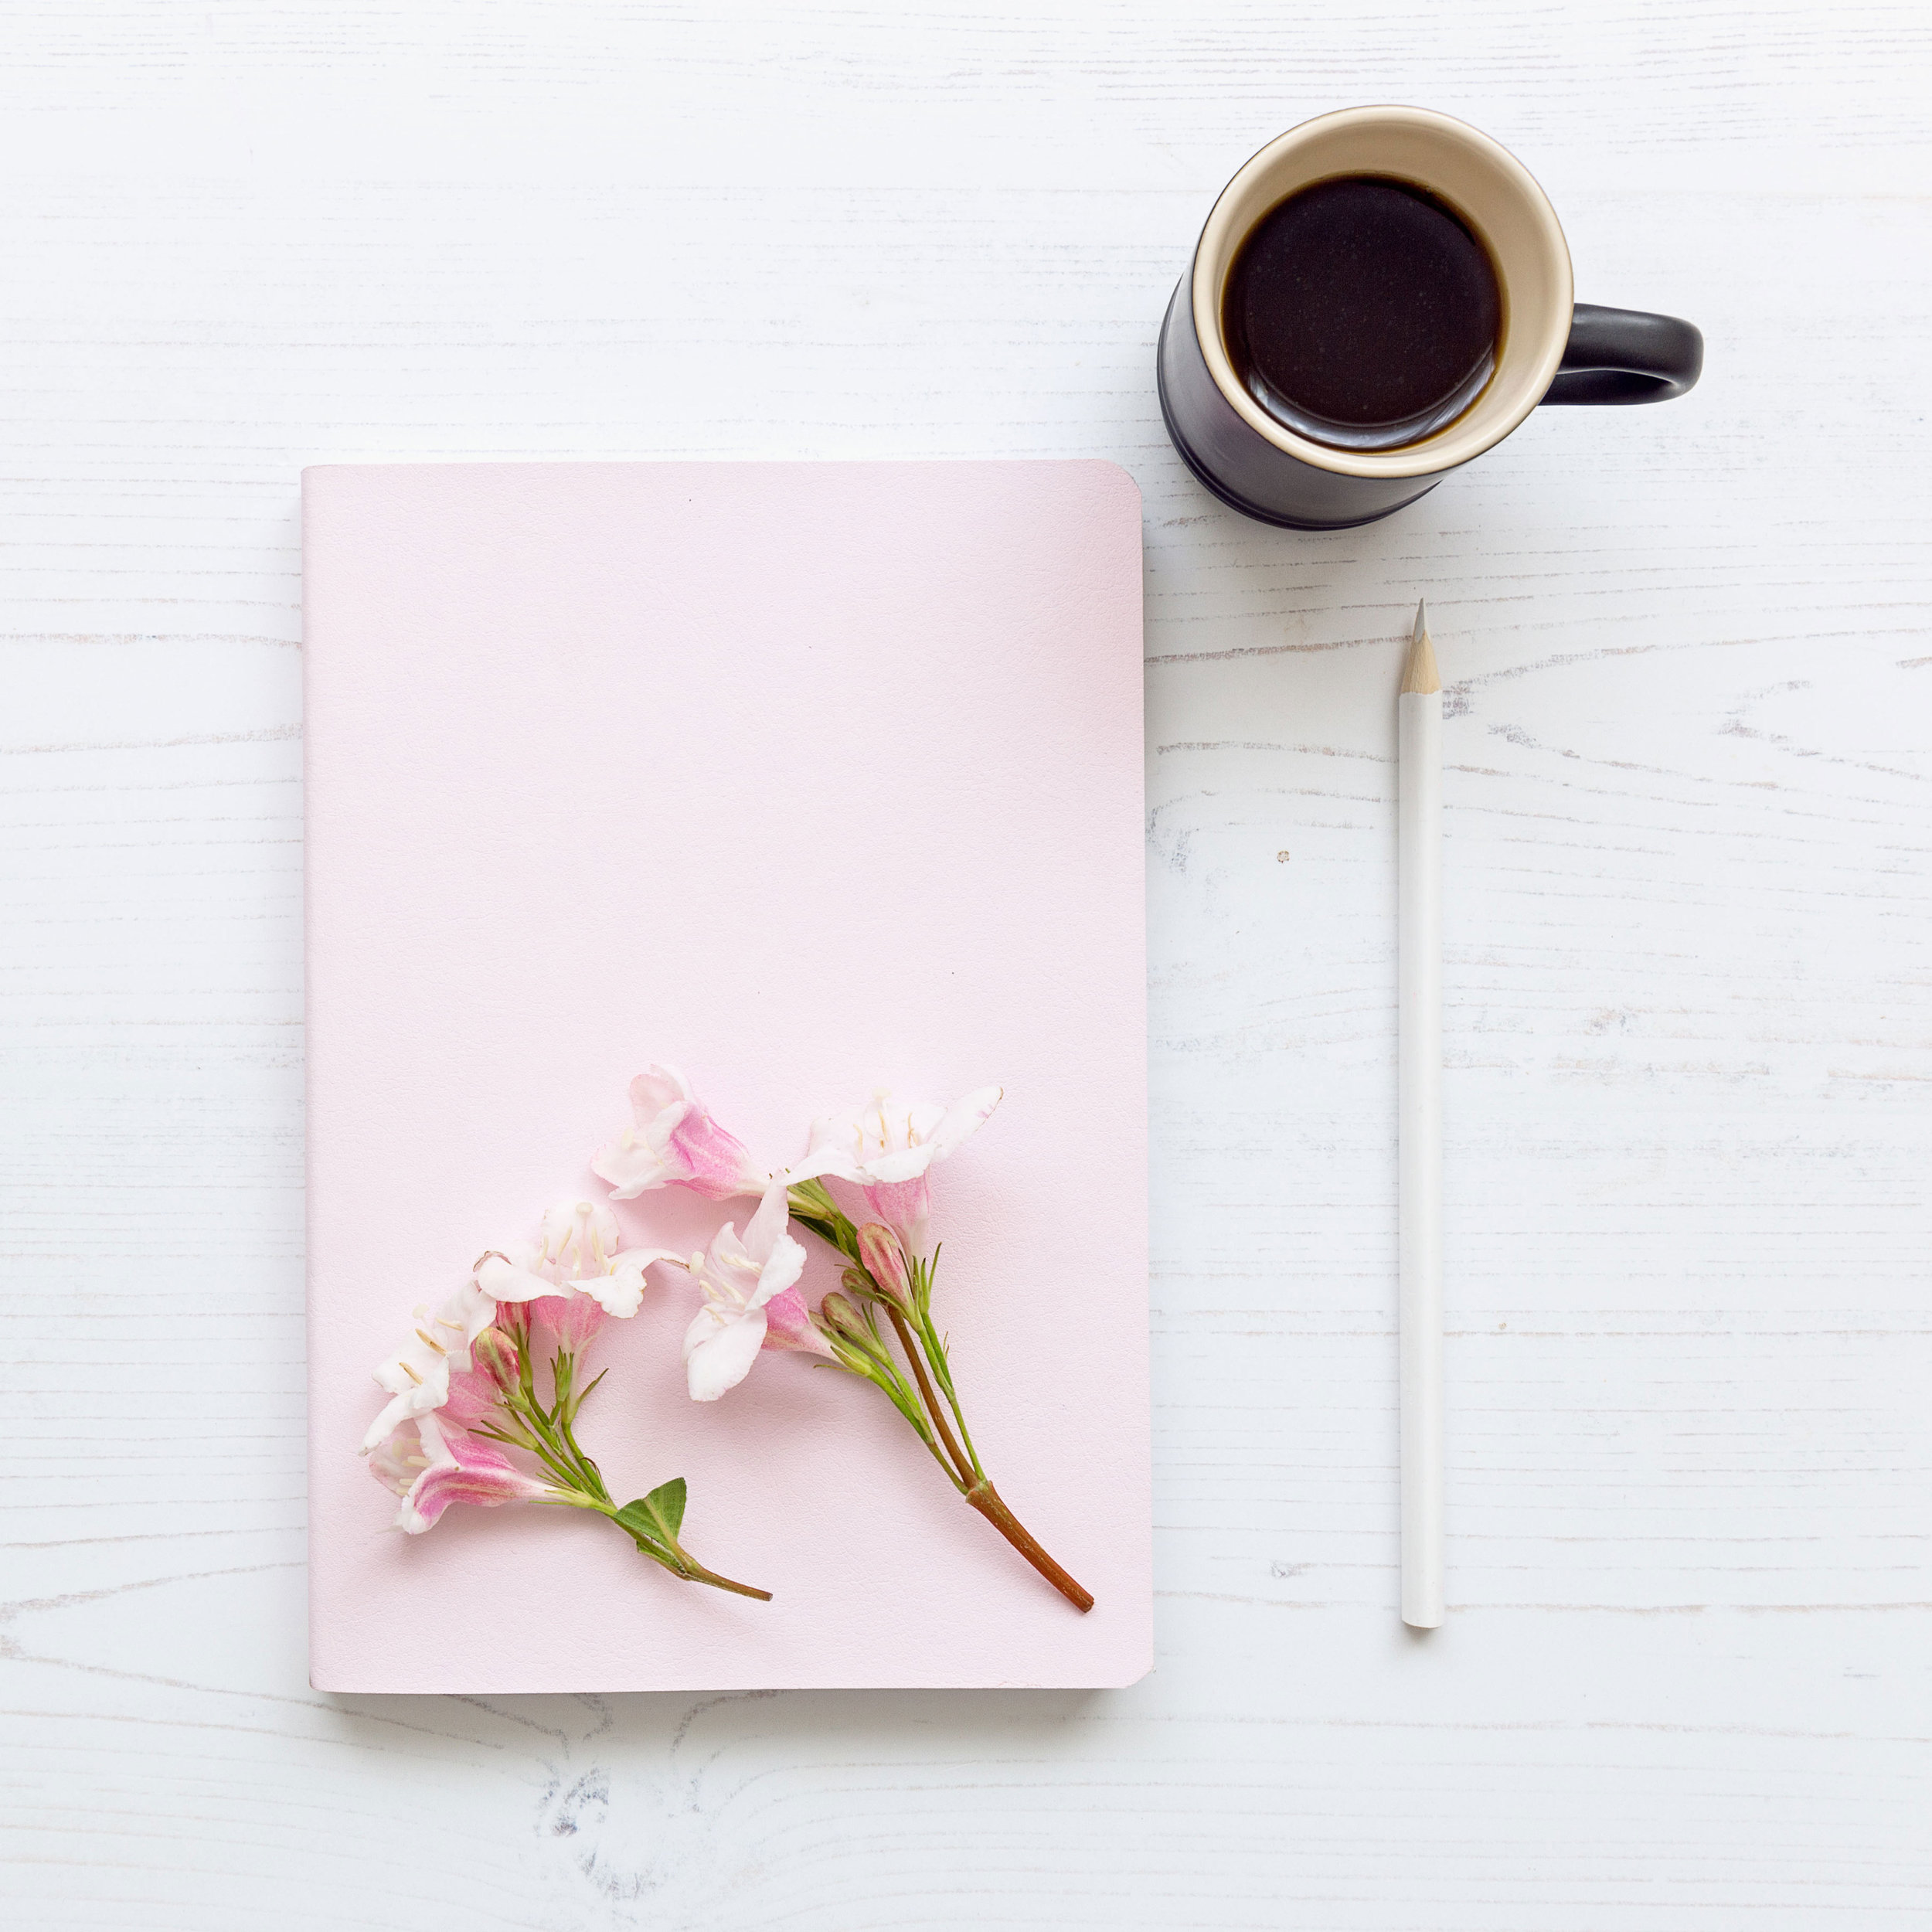 Hi_Res_Pink_Notebook_Coffee_Flatlay_4863_LouiseHowell.jpg